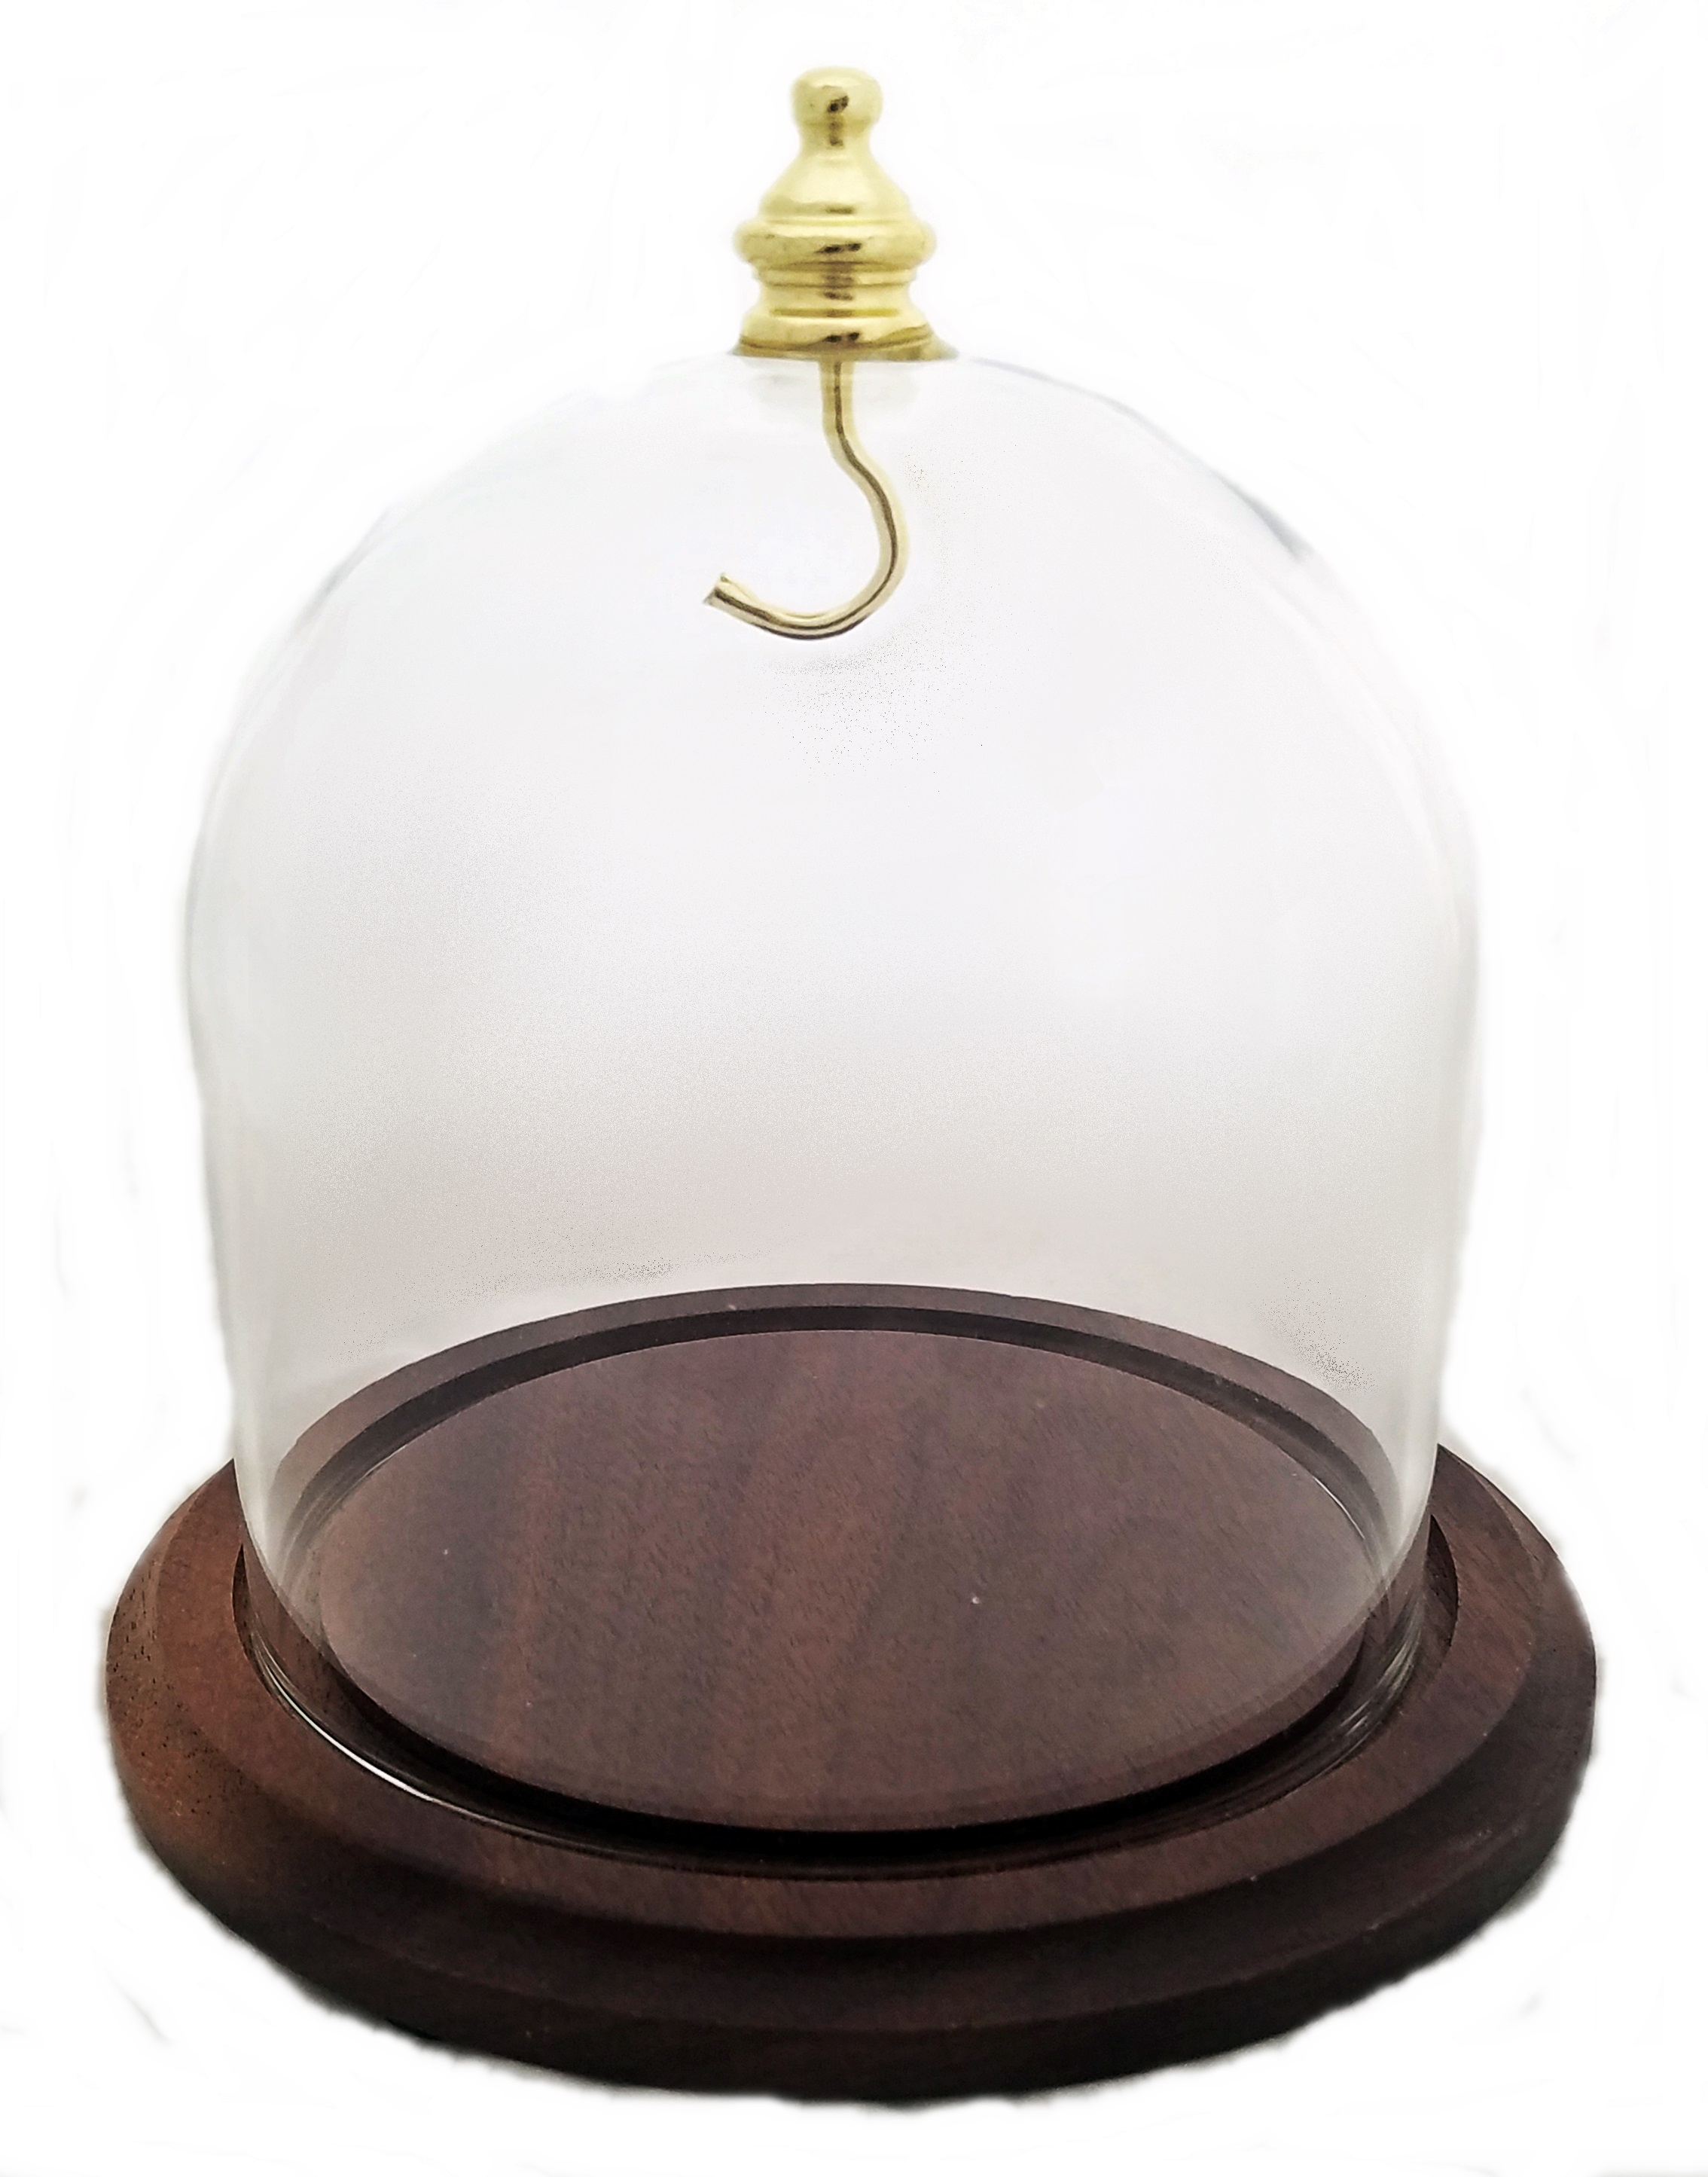 Dueber Walnut Display Dome Cloche